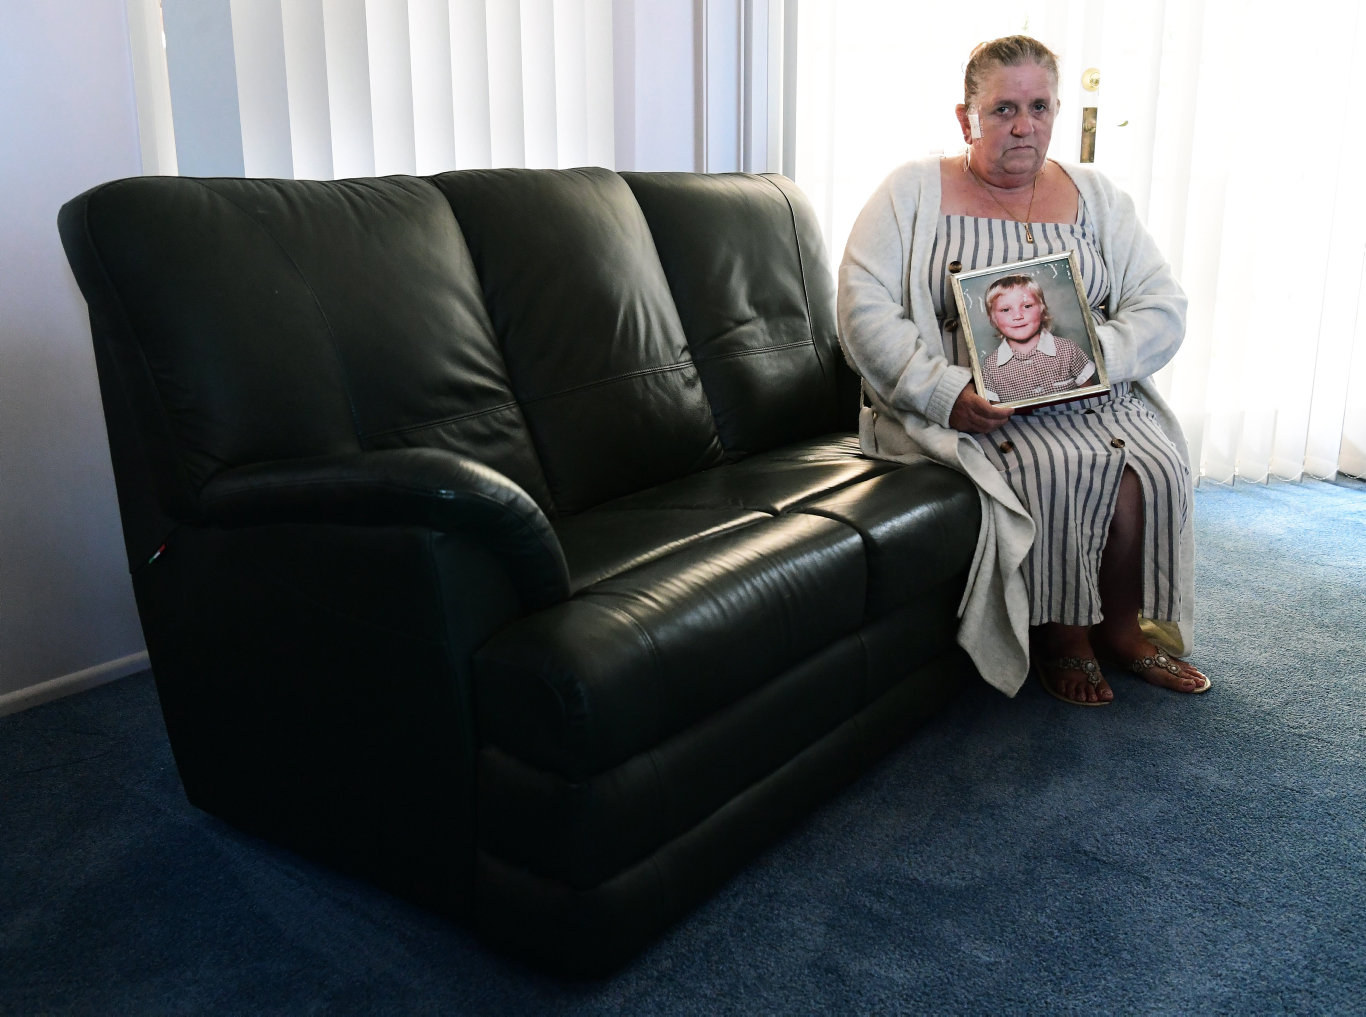 Janet Clarke holds a portrait of Stacey-Ann Tracy who was murdered 30 years ago in Roma.